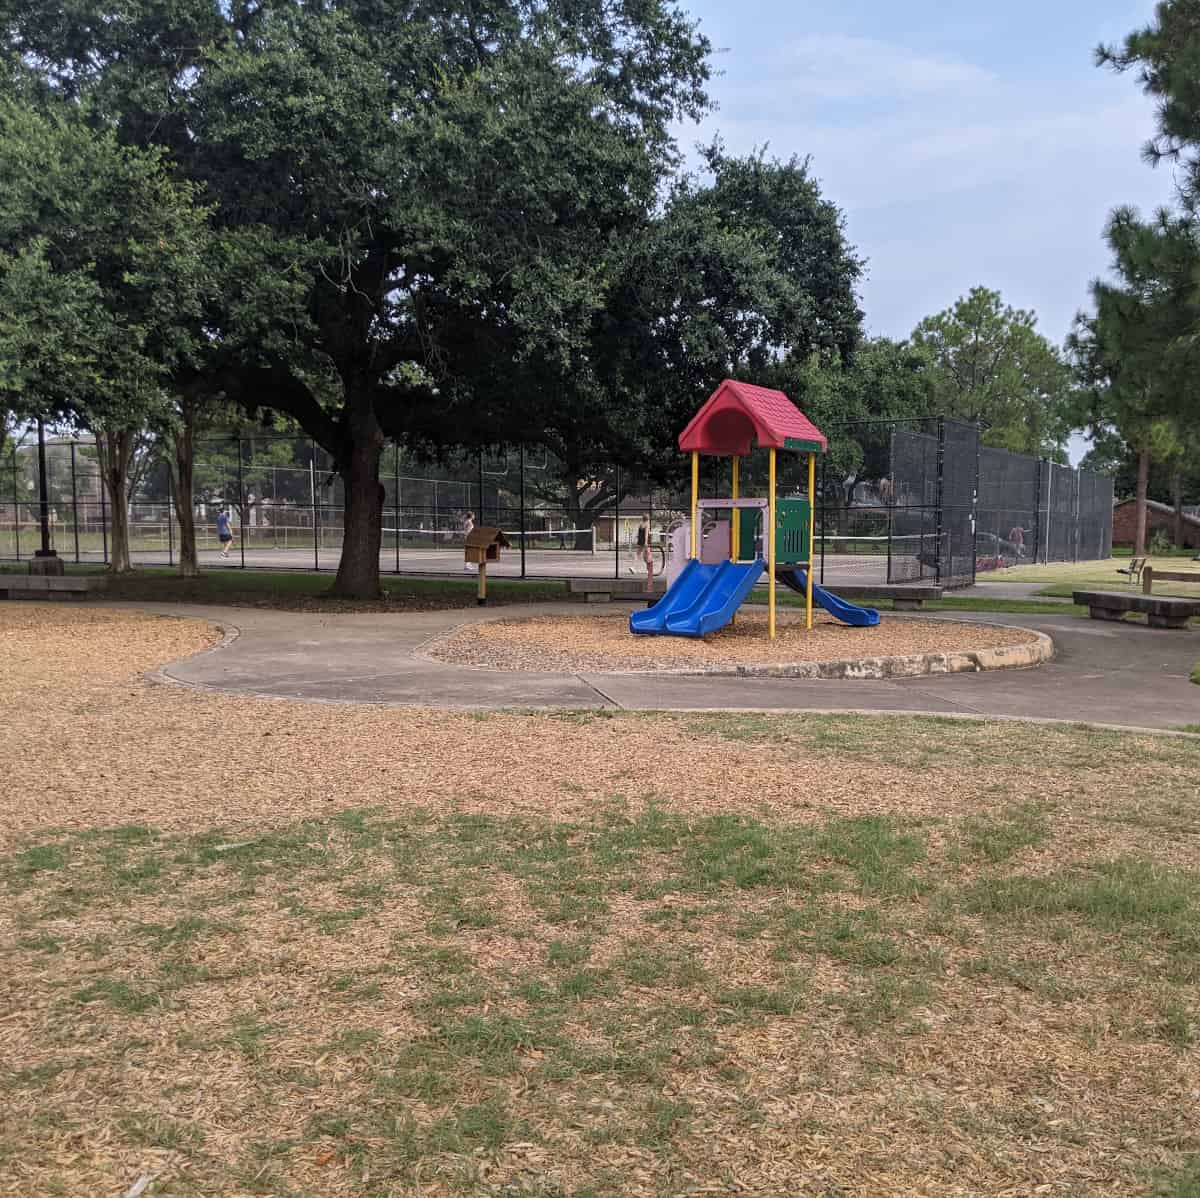 Meyerland Park Small Play Structure